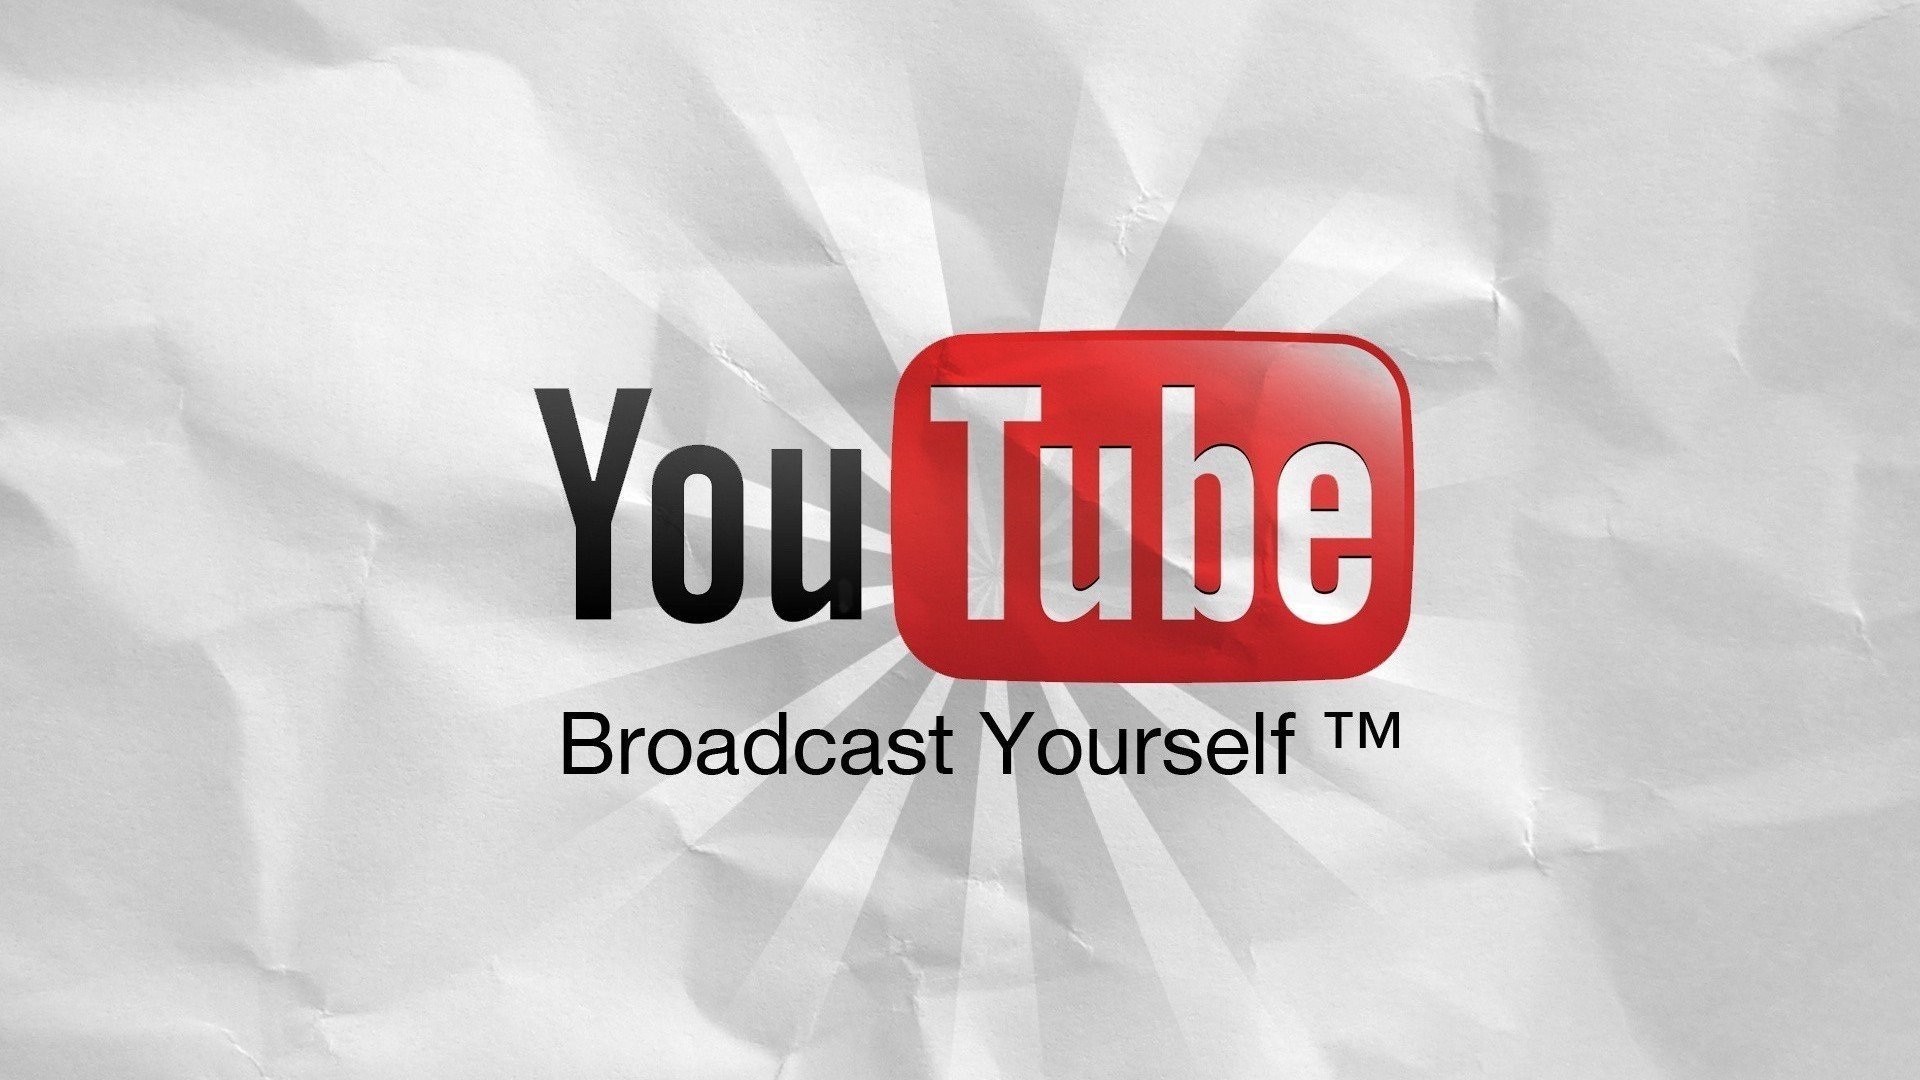 Amazing You Tube Yahoo Video Marketing & Advertising